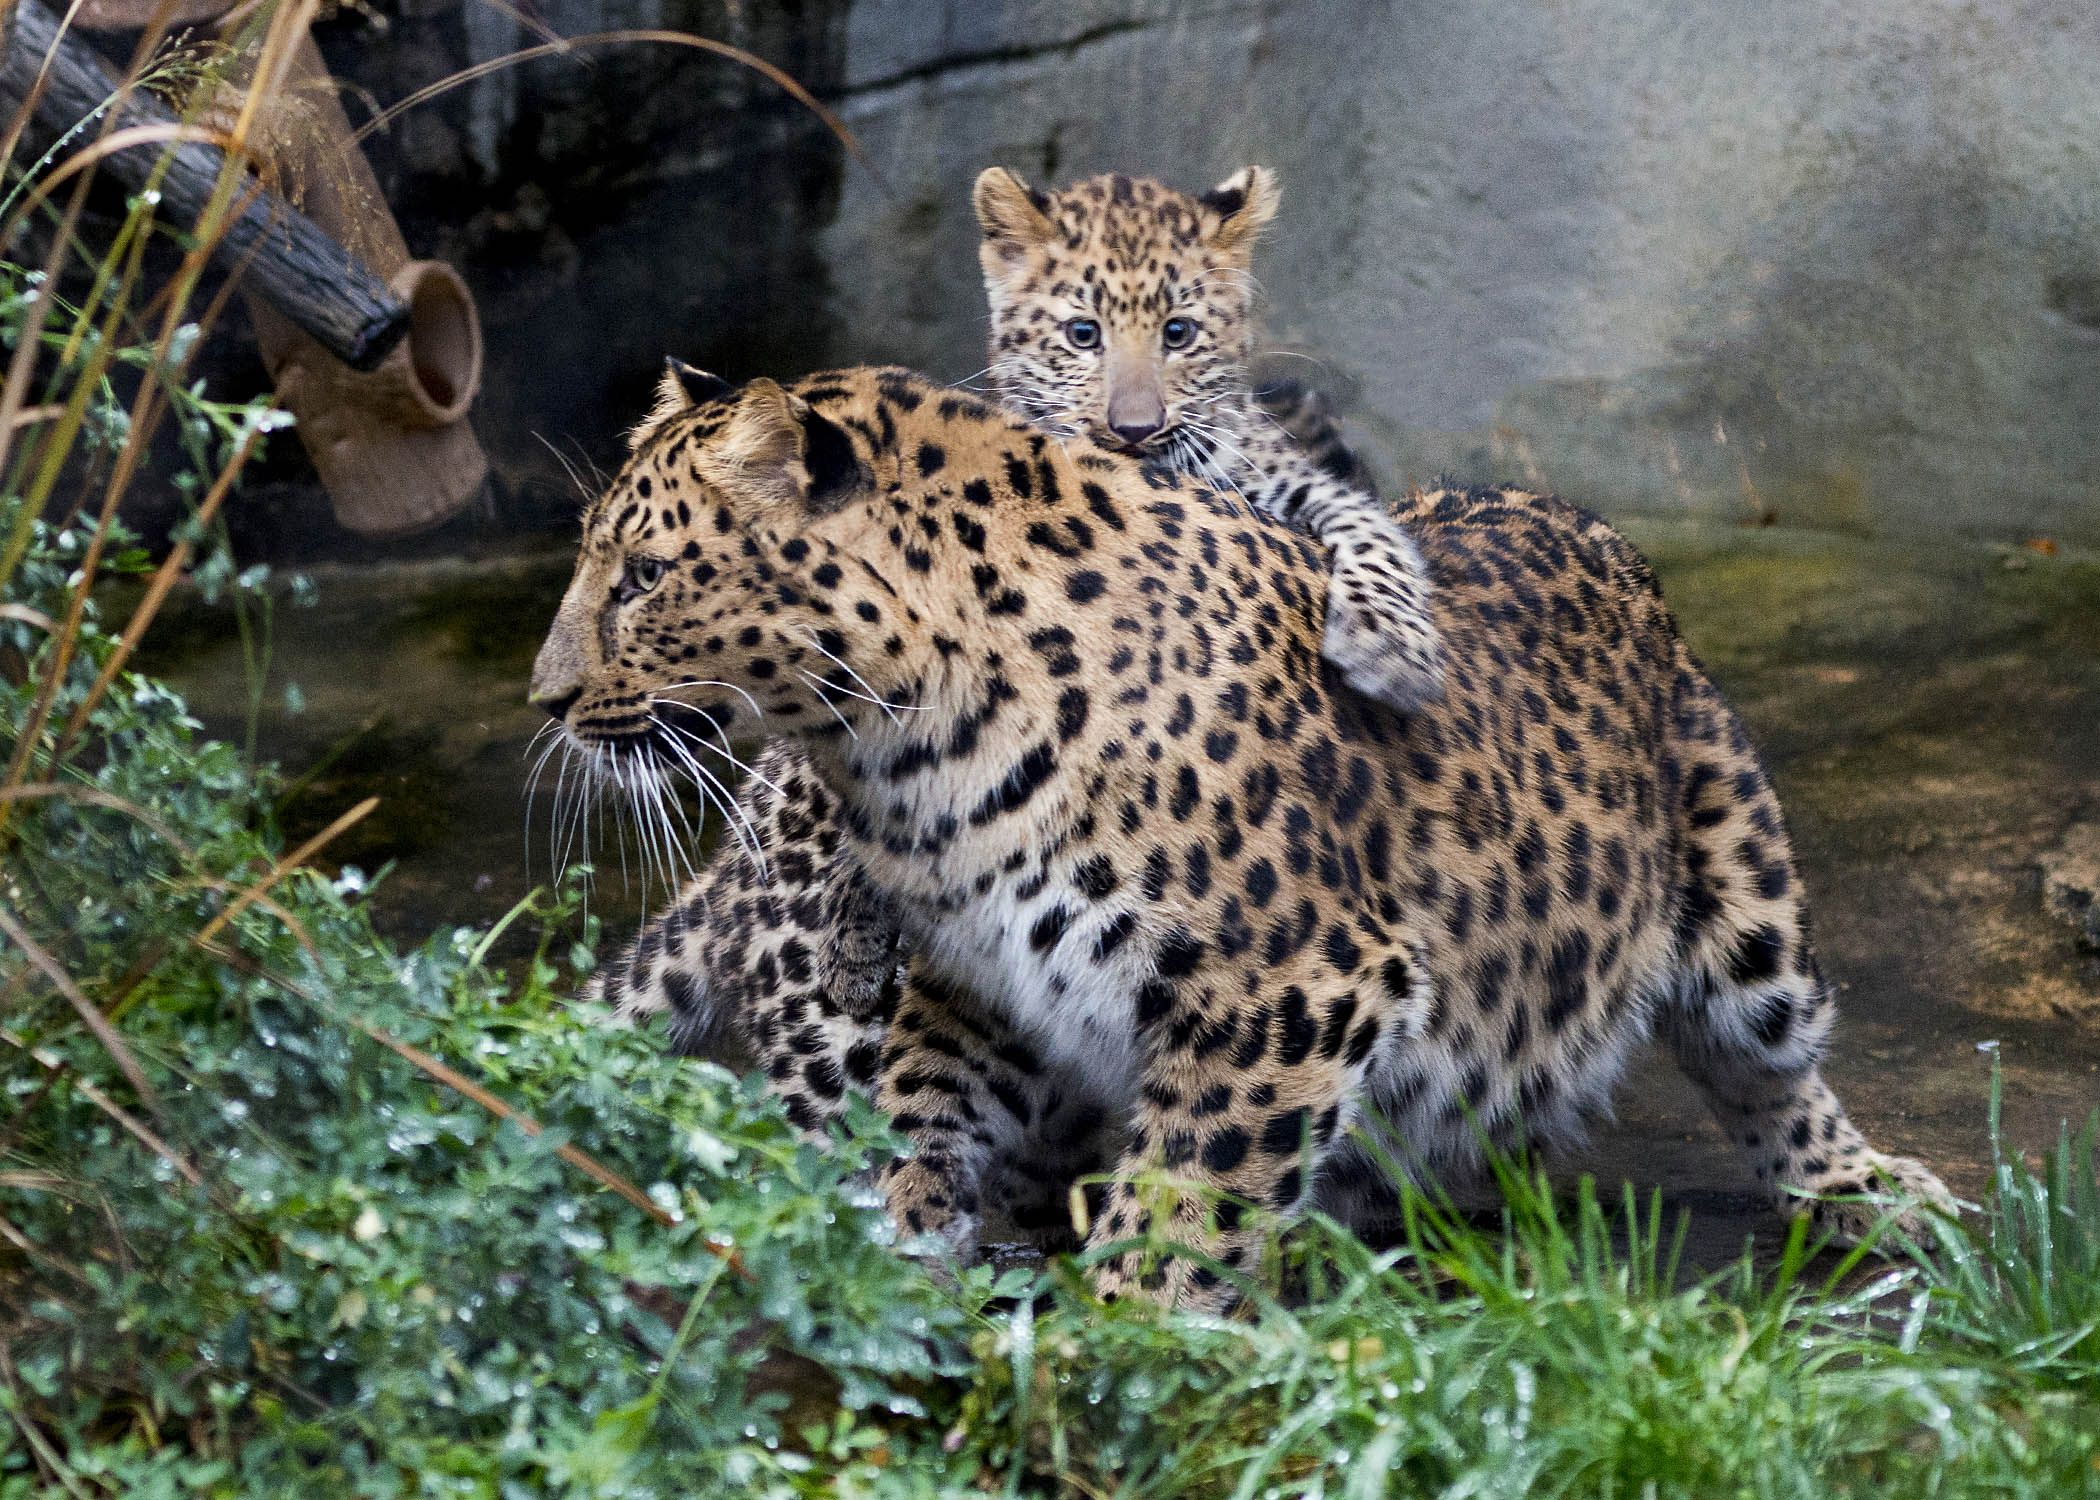 where do jaguars live in the tropical rainforest